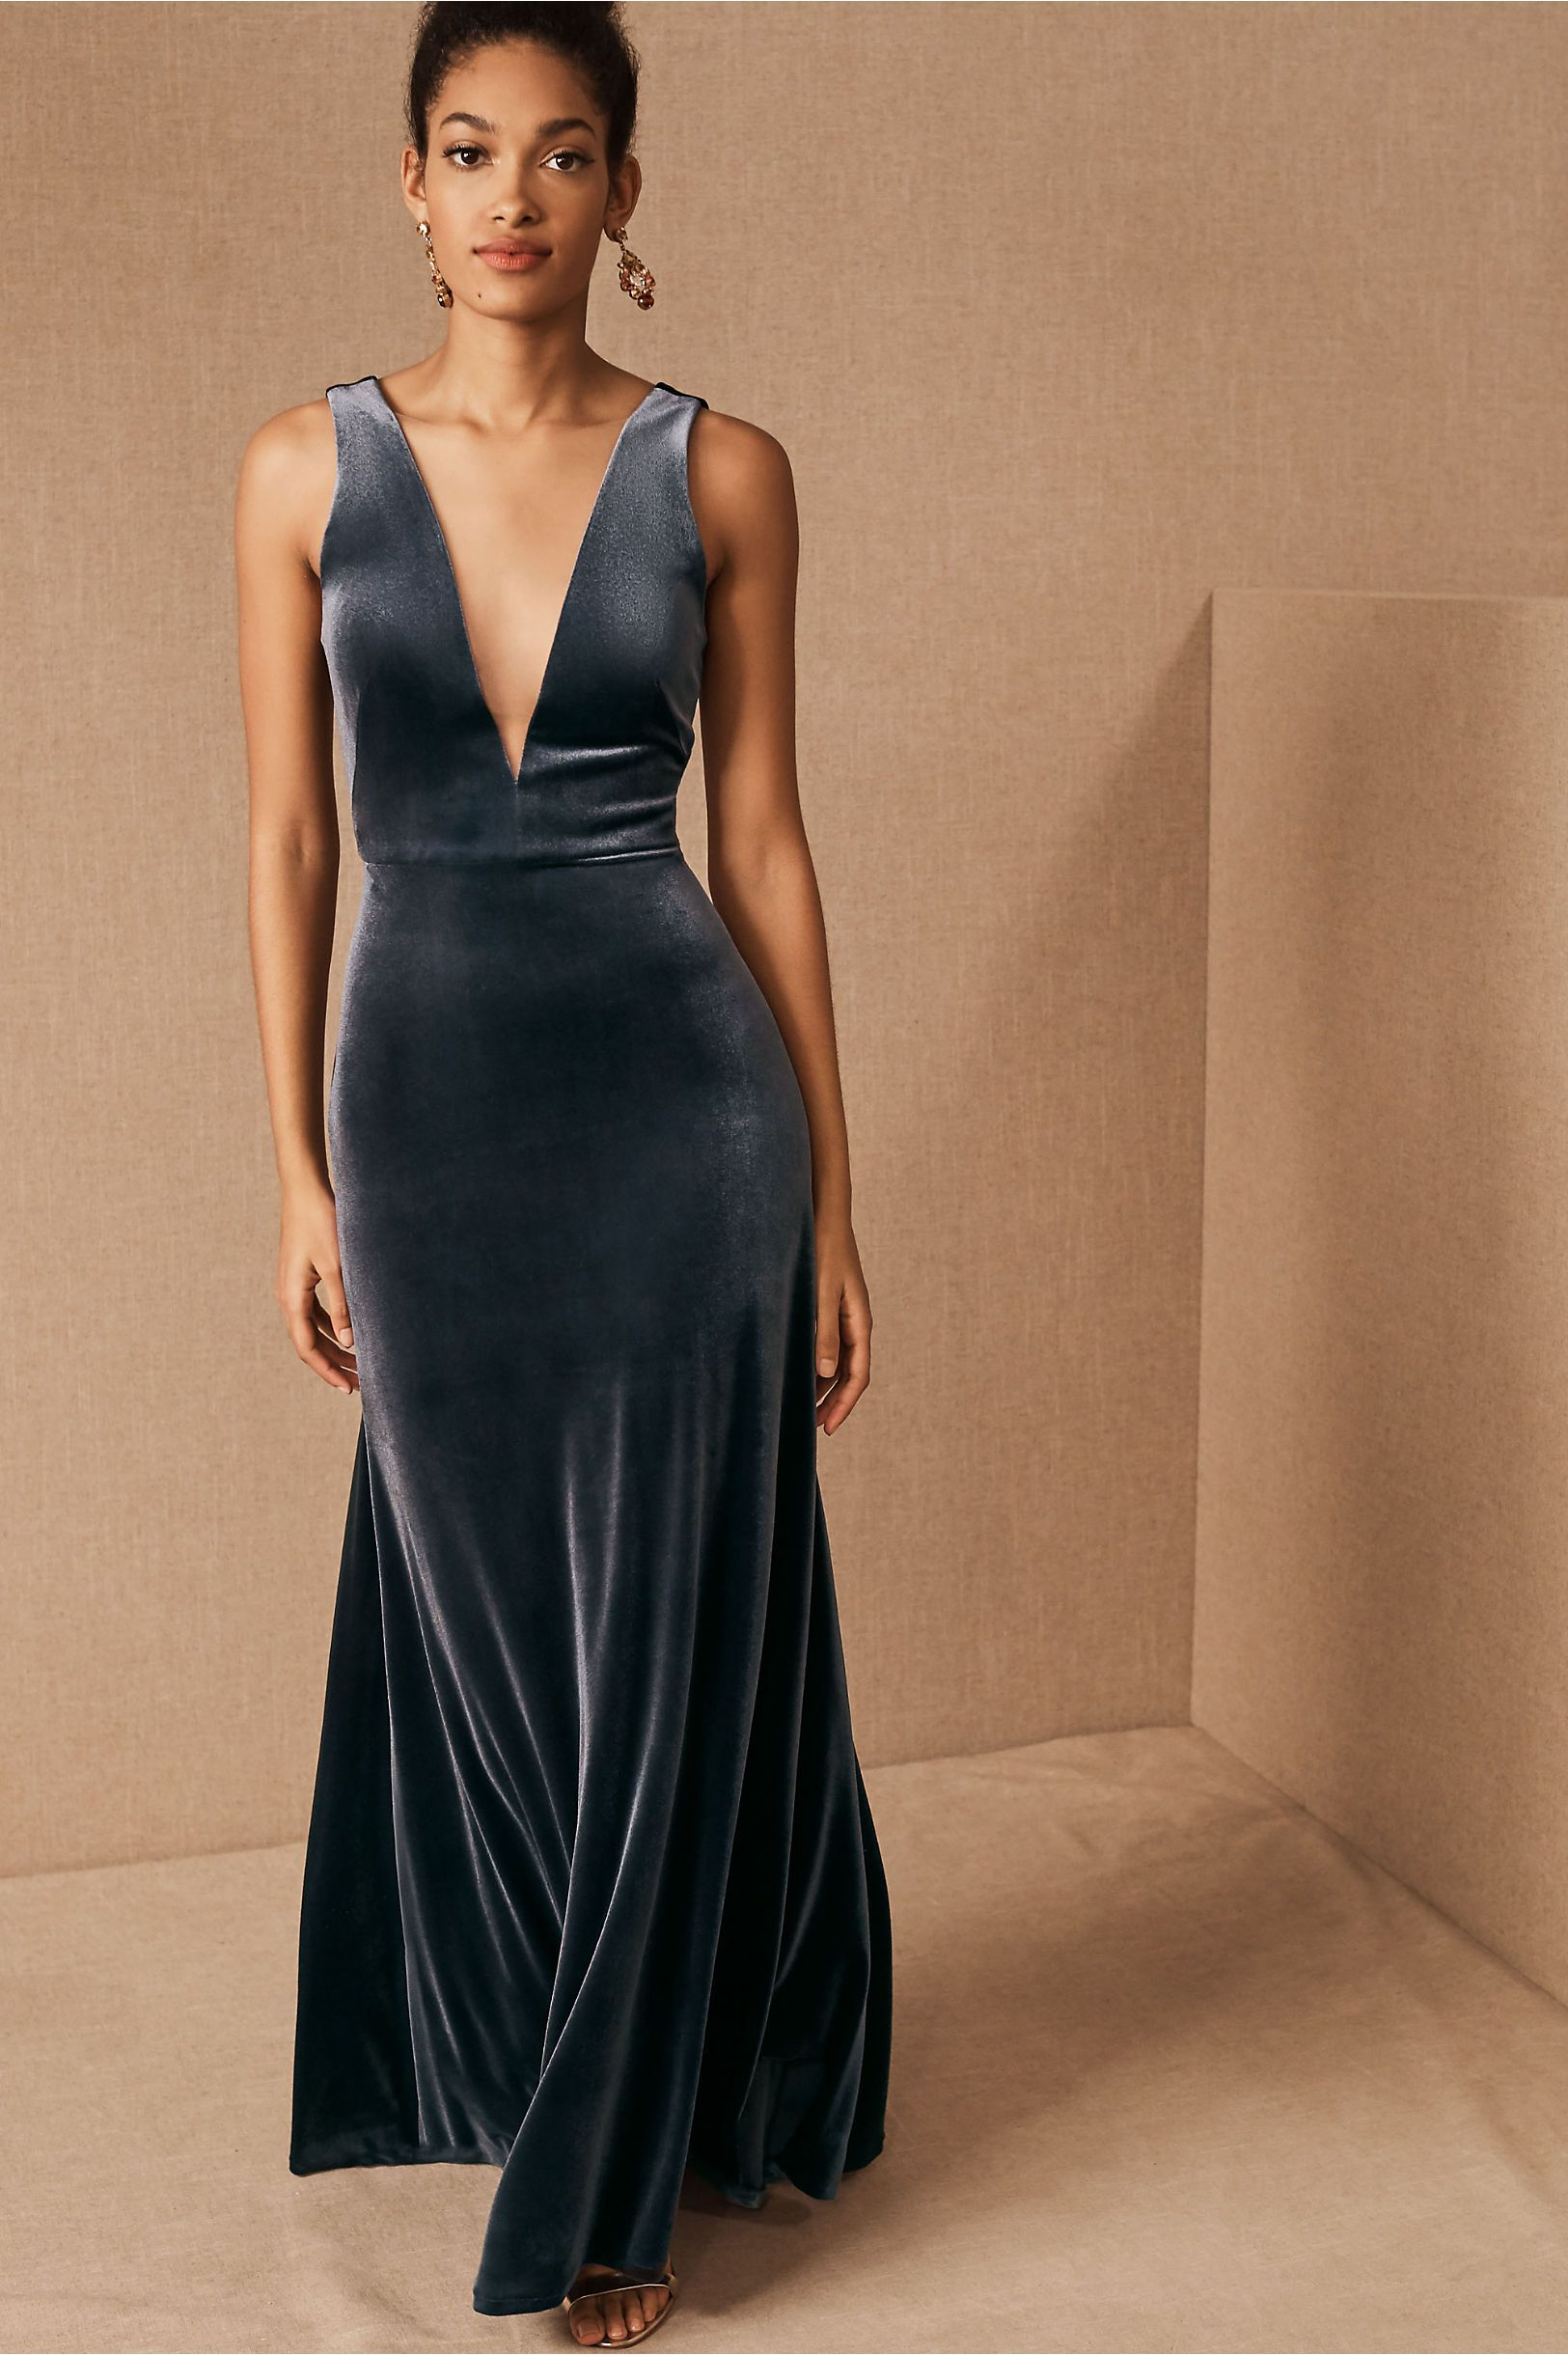 Blue Velvet Bridesmaid Dresses In 2020 Velvet Bridesmaid Dresses Designer Party Dresses Stunning Dresses